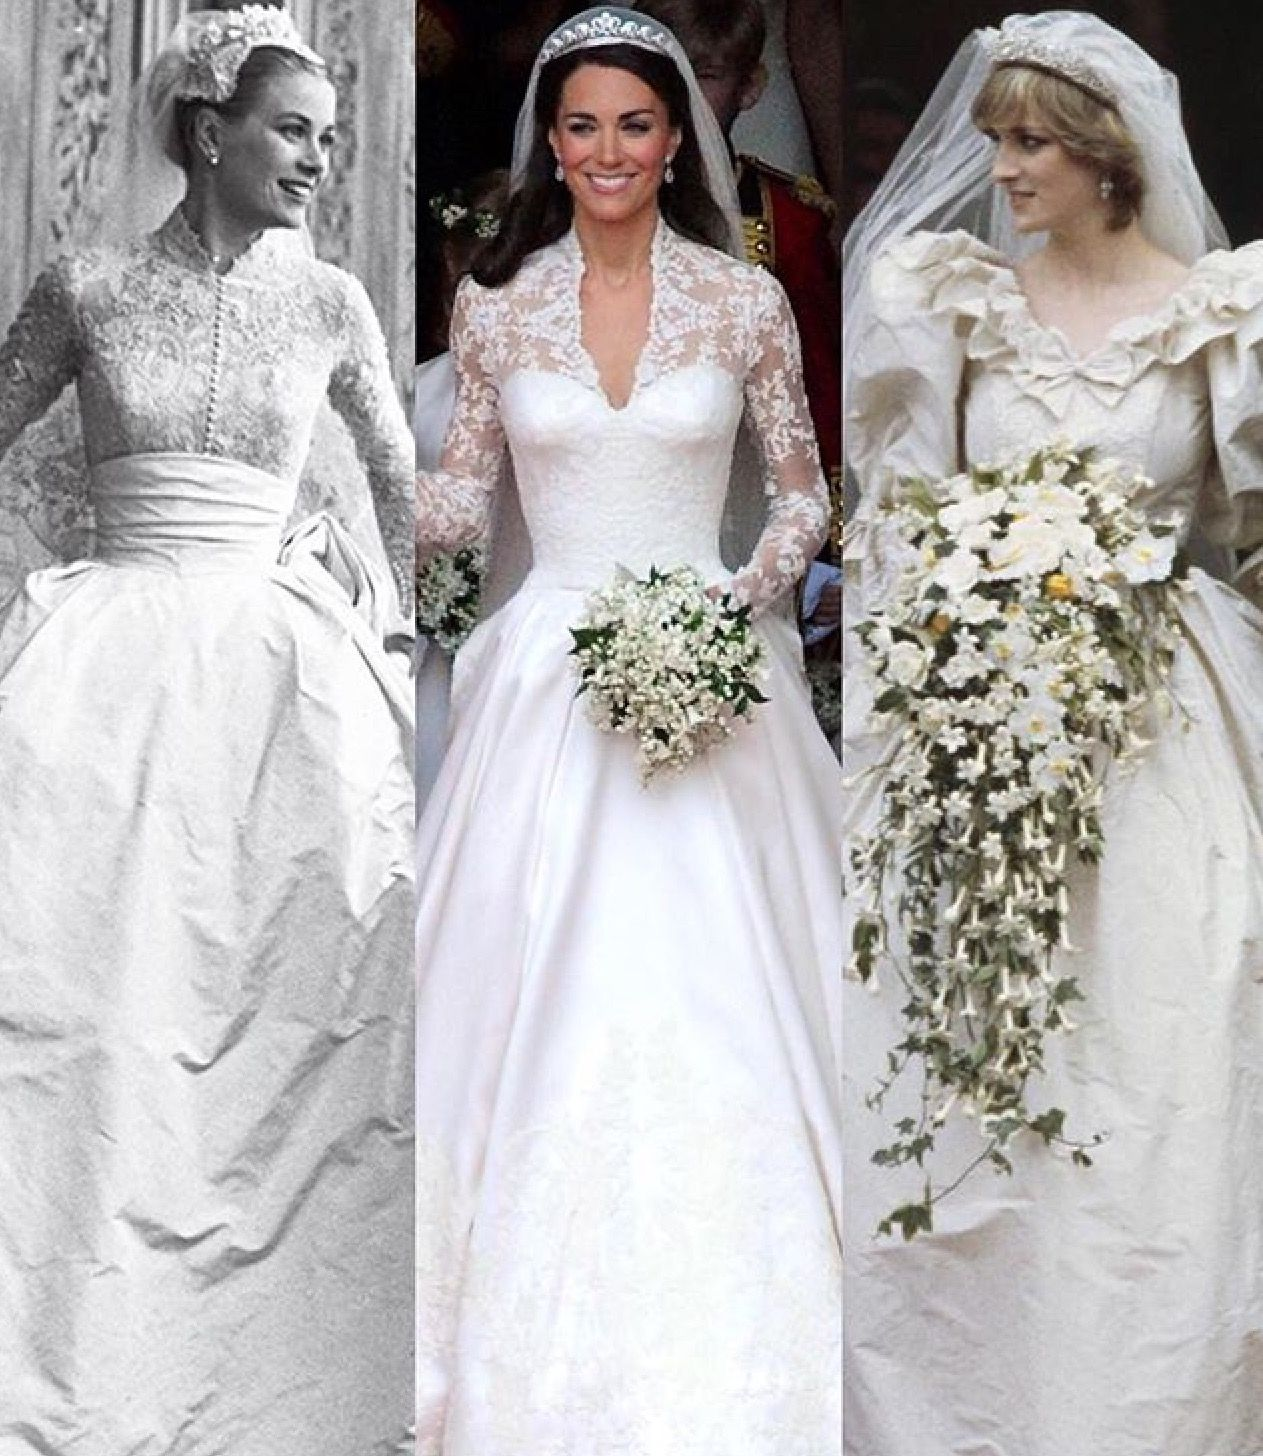 Princess Diana the forever enchanting bride we all love